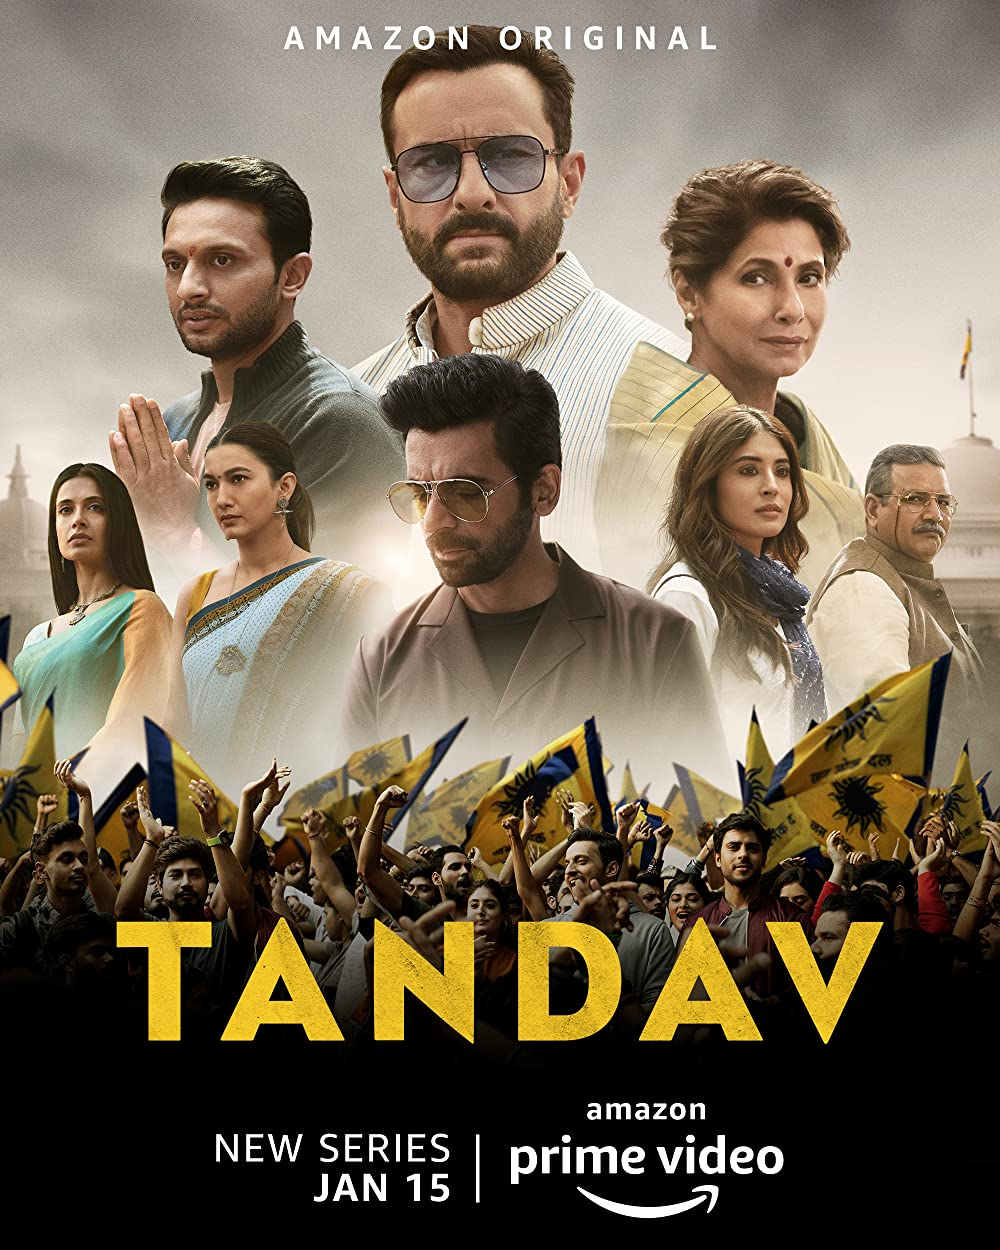 Tandav S01 2021 Hindi Amazon Original Web Series Official Trailer 1080p HDRip Download